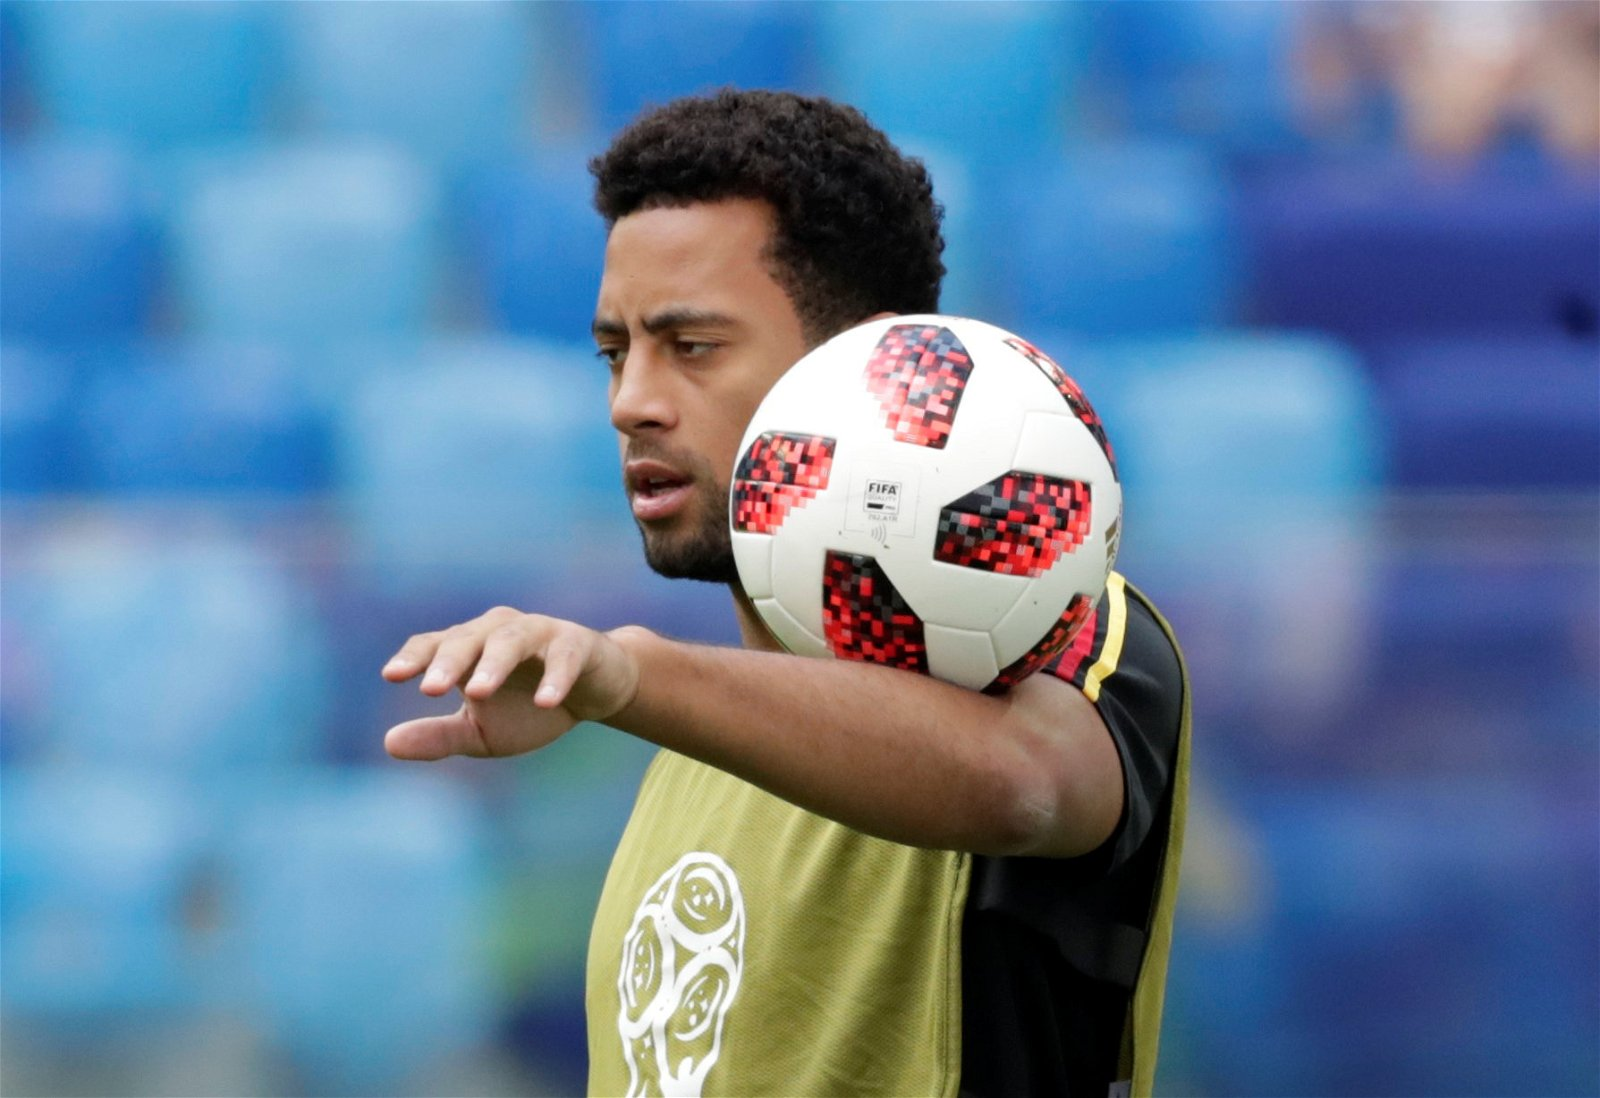 Mousa Dembele warming up at the World Cup